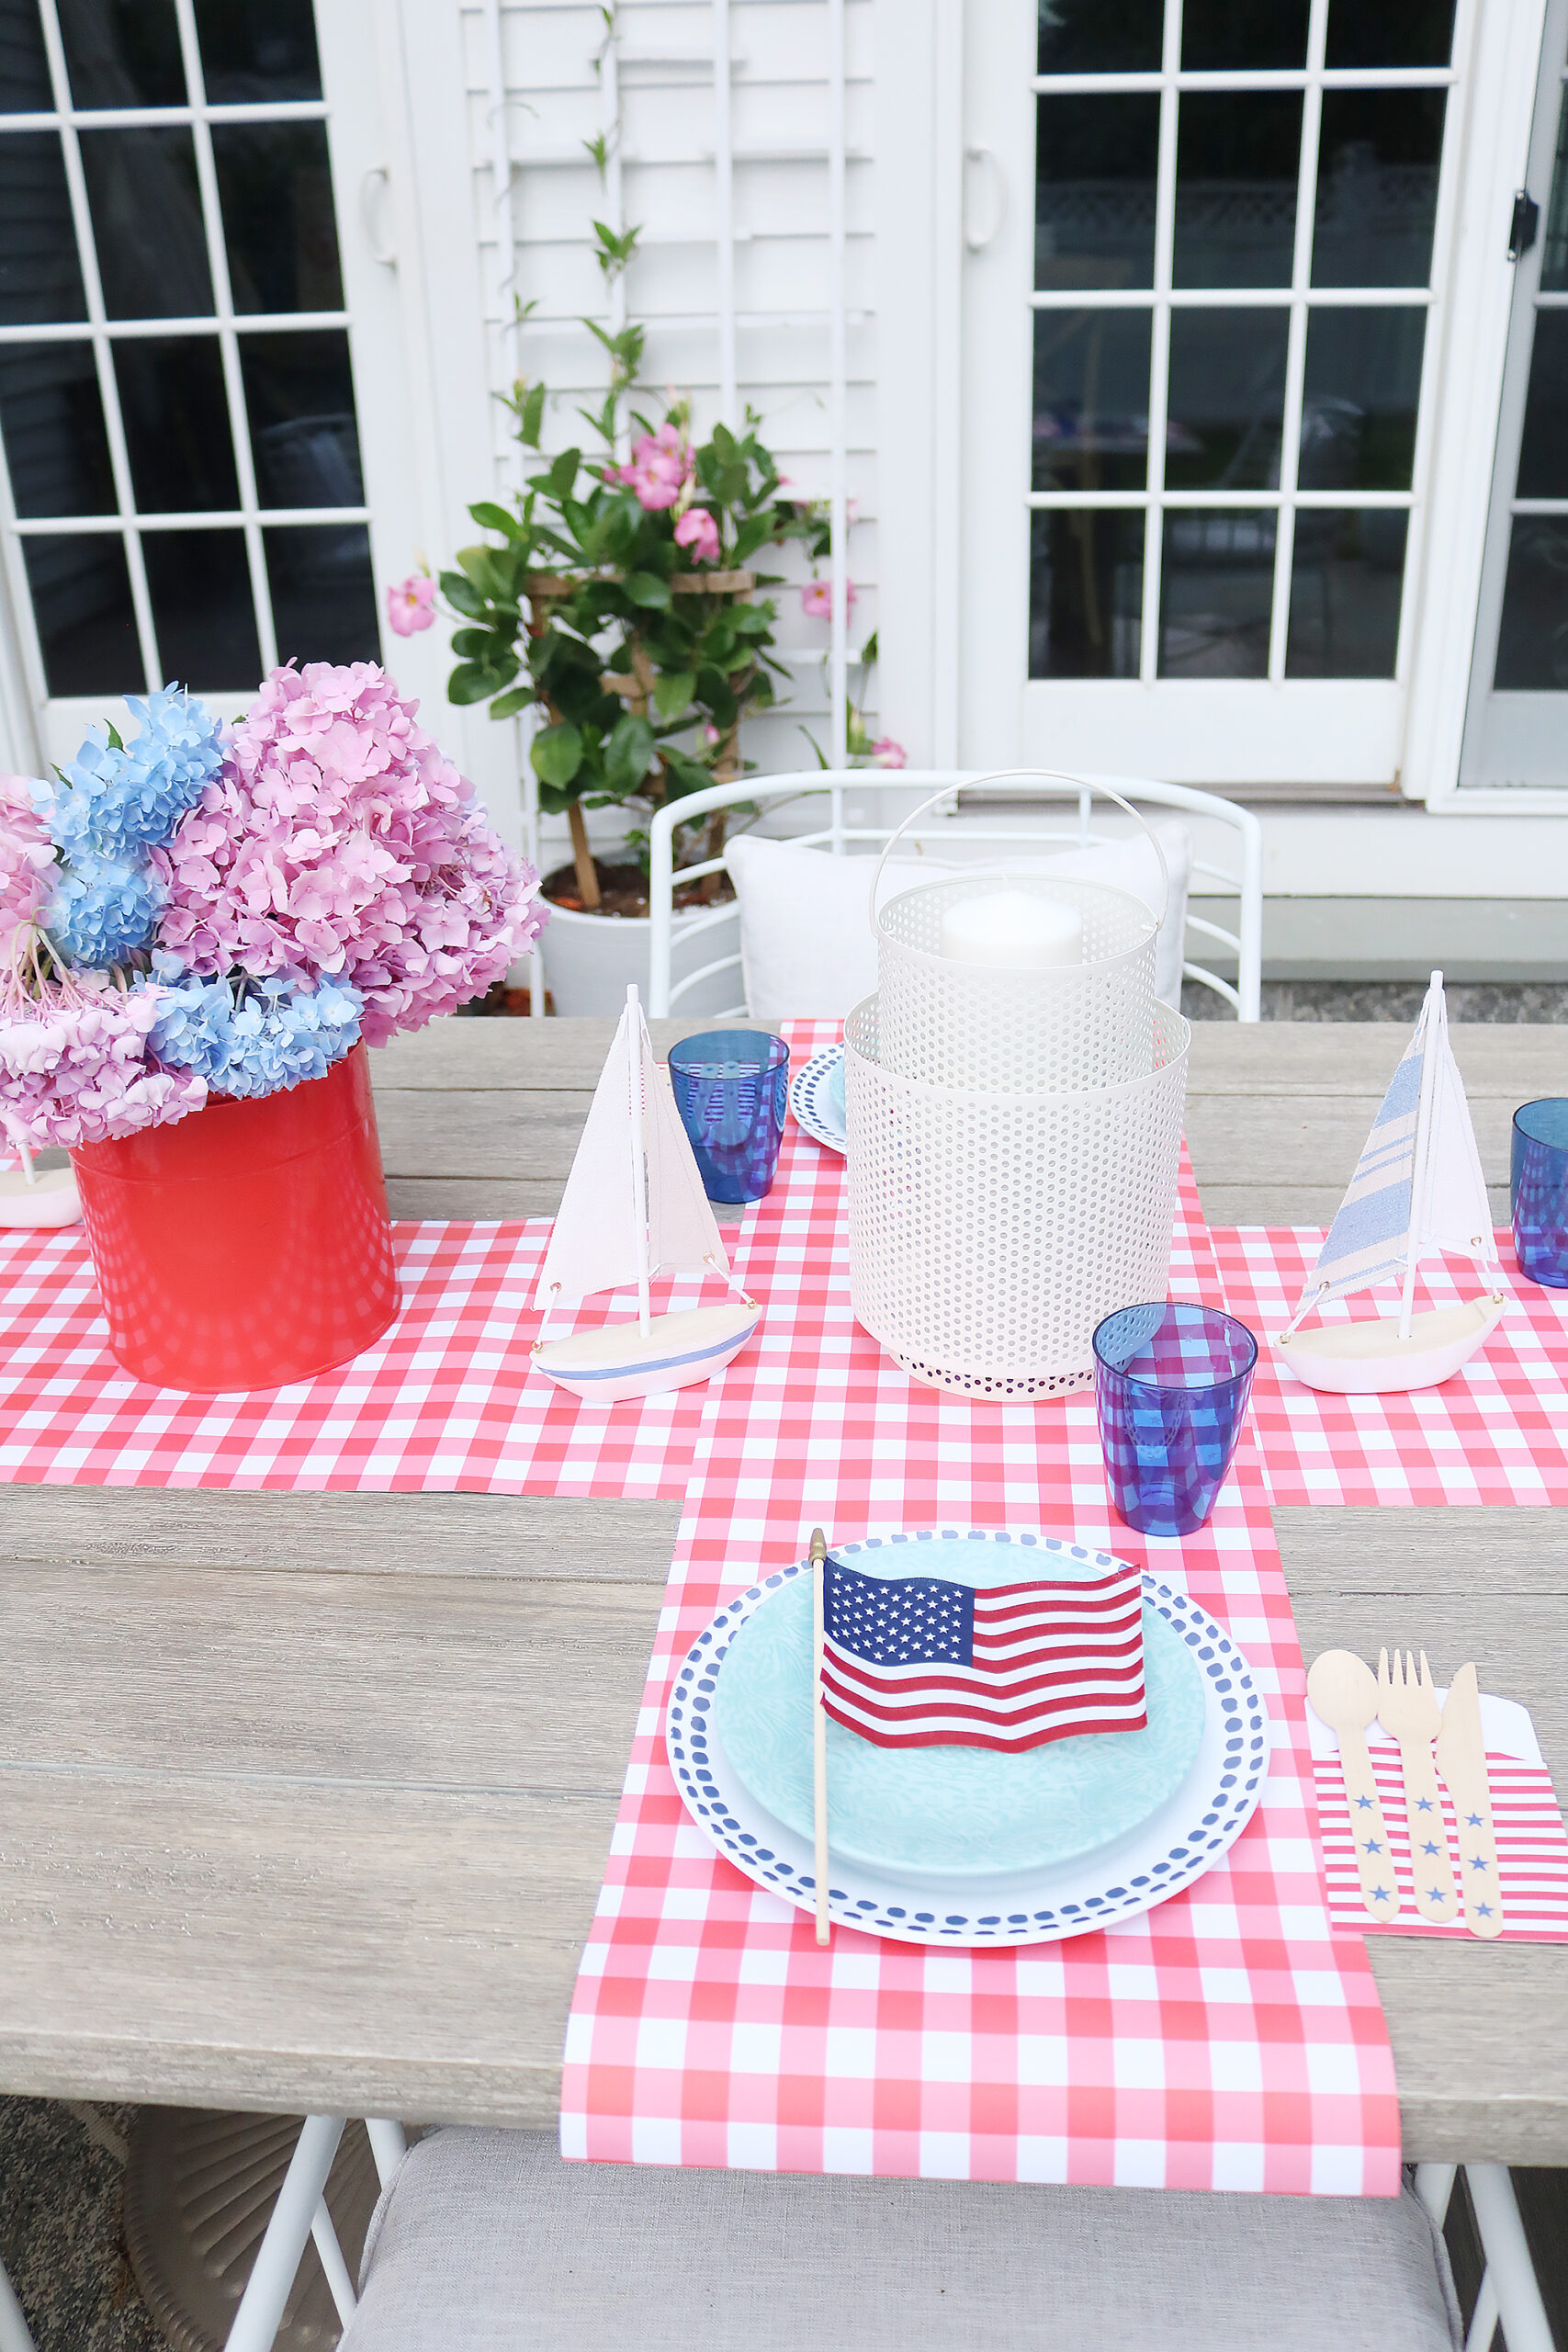 This year host a 4th of July barbecue party and sharing simple budget-friendly decorating tips, 4th of july party decorations, 4th of July outfit, red gingham dress, 4th of July entertaining tips, american flag decorations, backyard party, 4th of july tablescape  || Darling Darleen Top CT Lifestyle Blogger #4thofjuly #4thofjulyoutfit